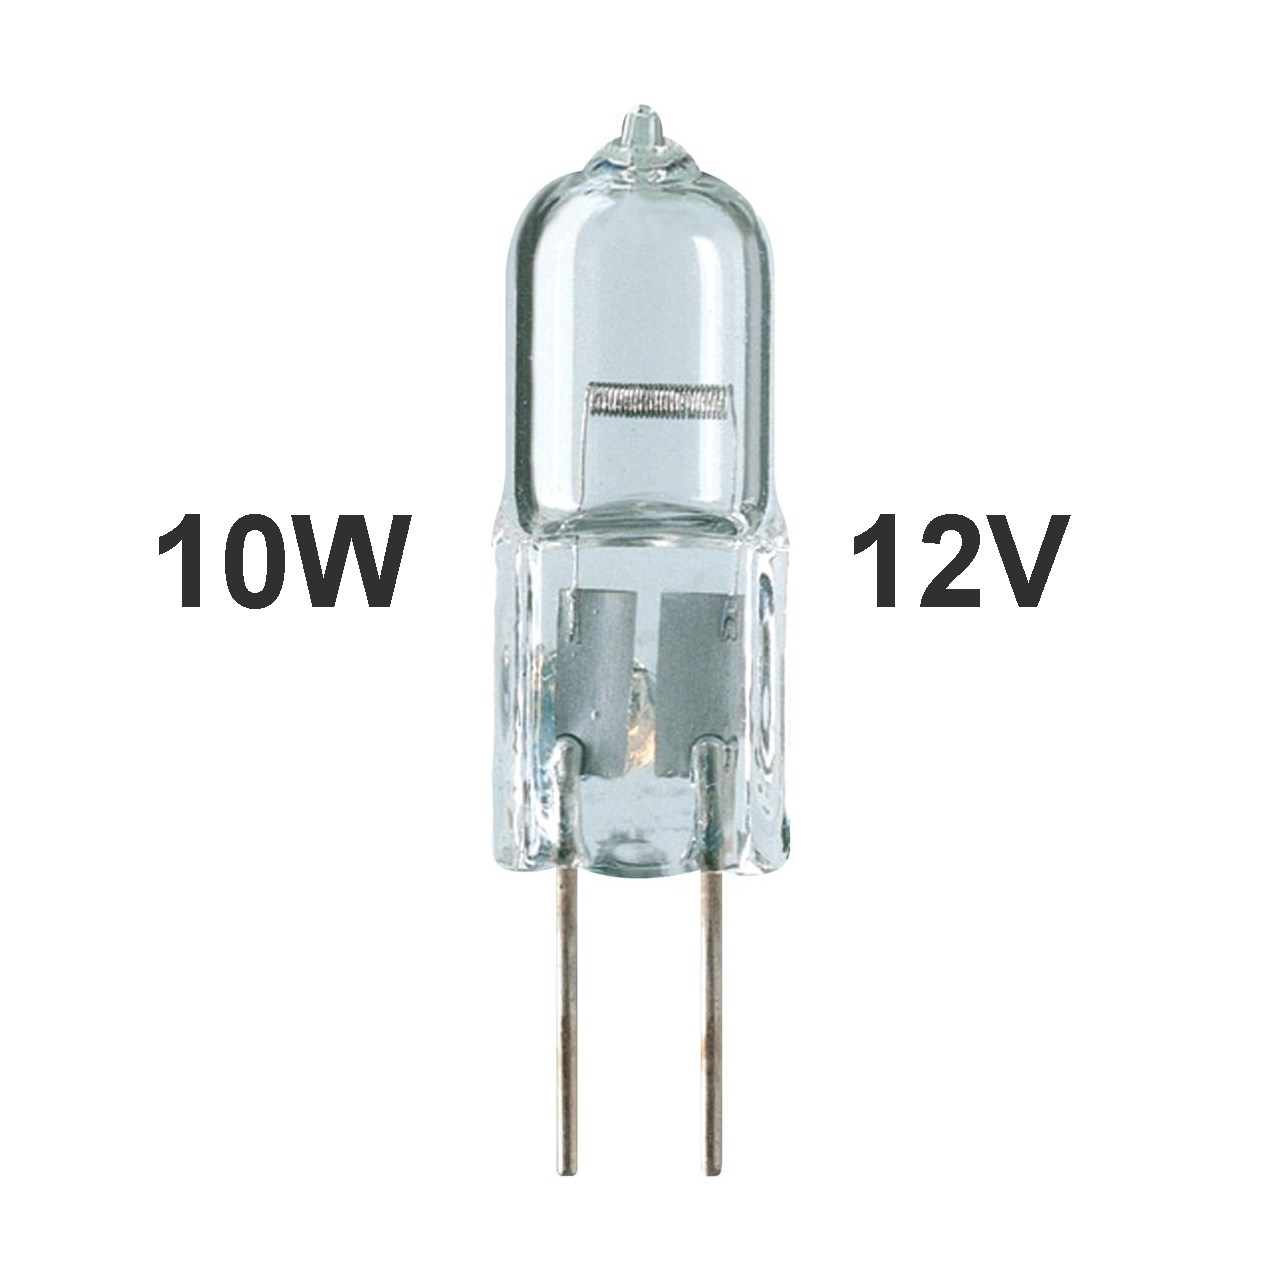 Brizzo Lighting Stores 10w Halogen G4 Bi Pin Bulb 12v Low